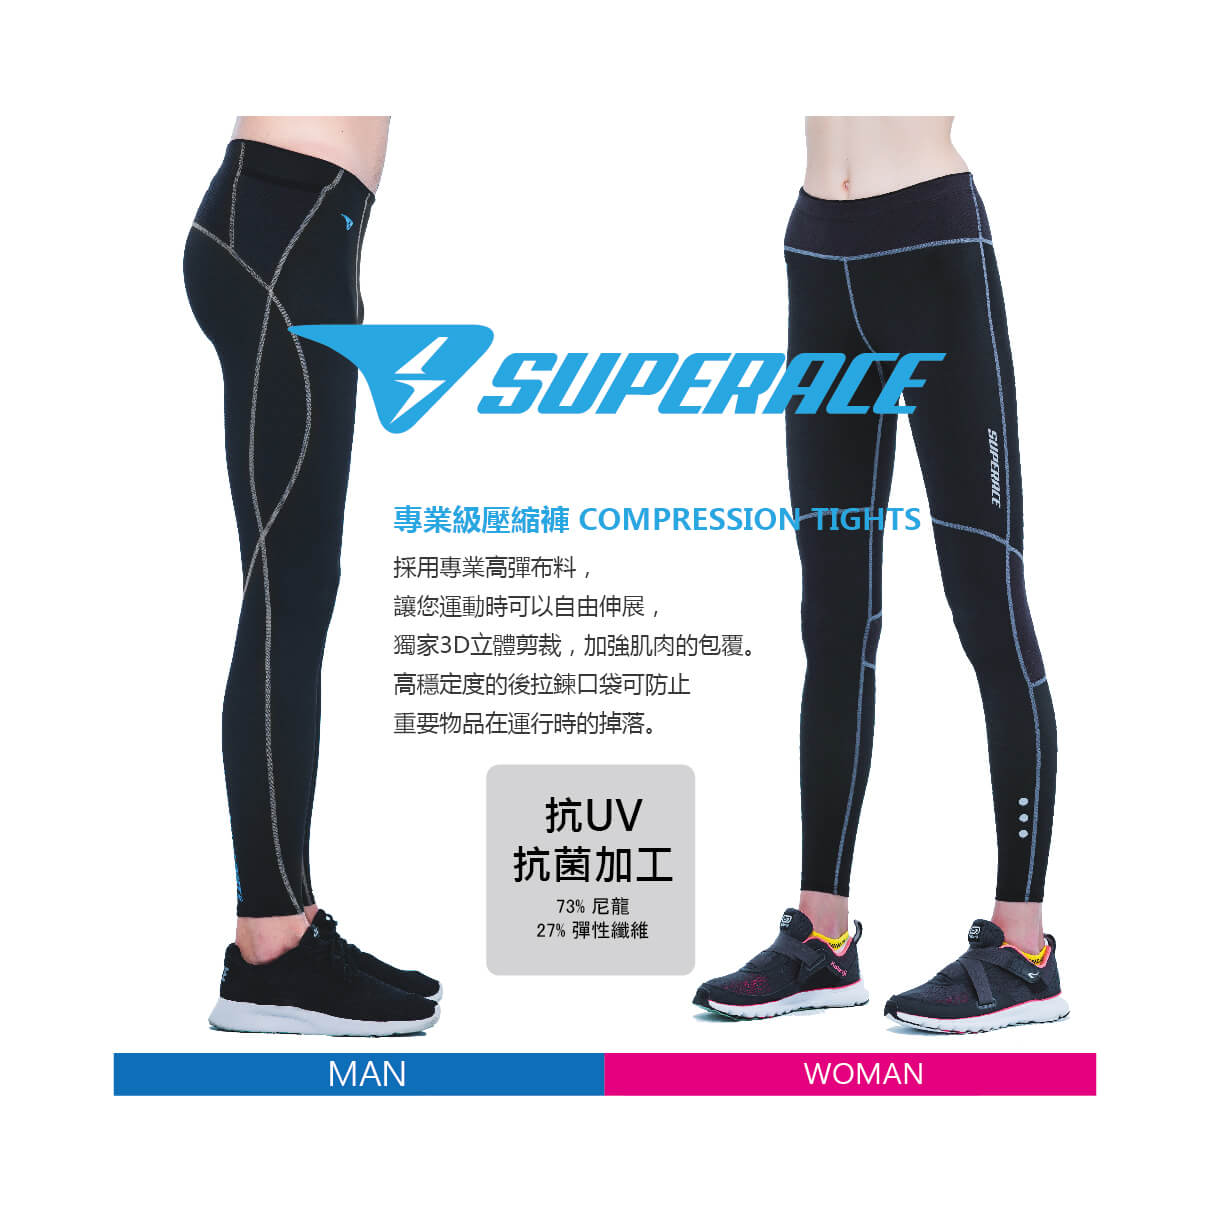 COMPRESSION TIGHTS FOR WOMAN